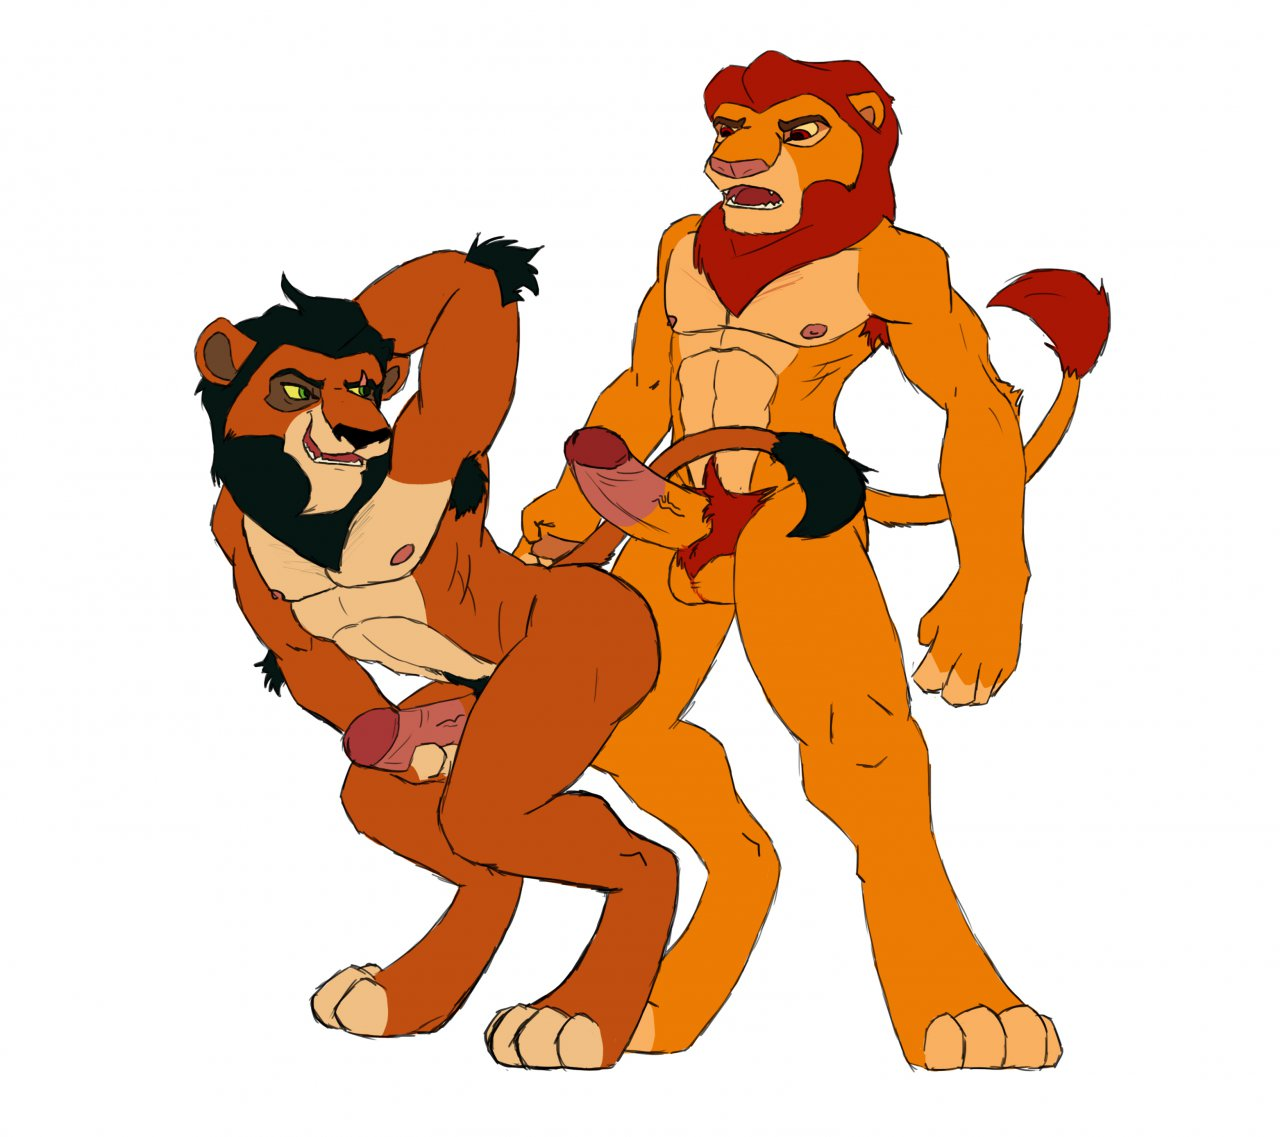 the kopa from who is lion king Rick and morty annie nude